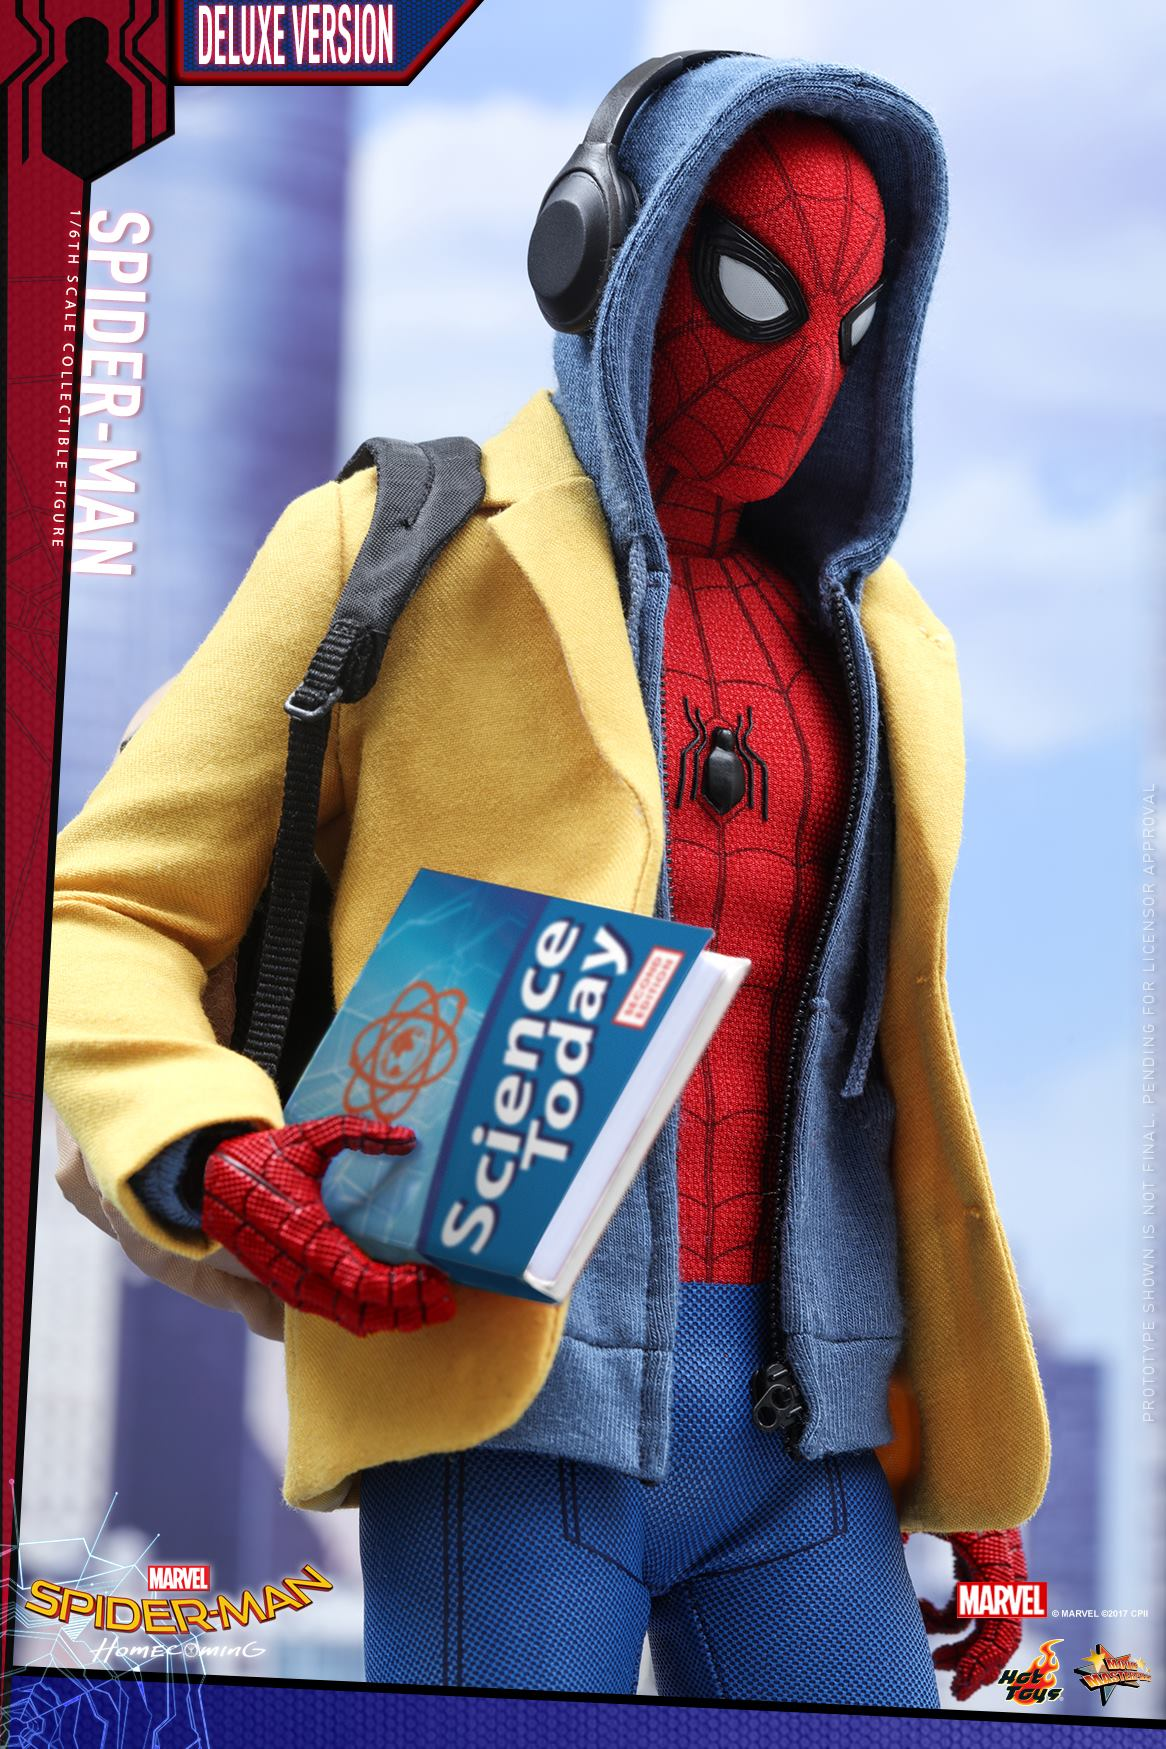 Hot Toys Homecoming Spider-Man Deluxe 1/6 Figure Up for